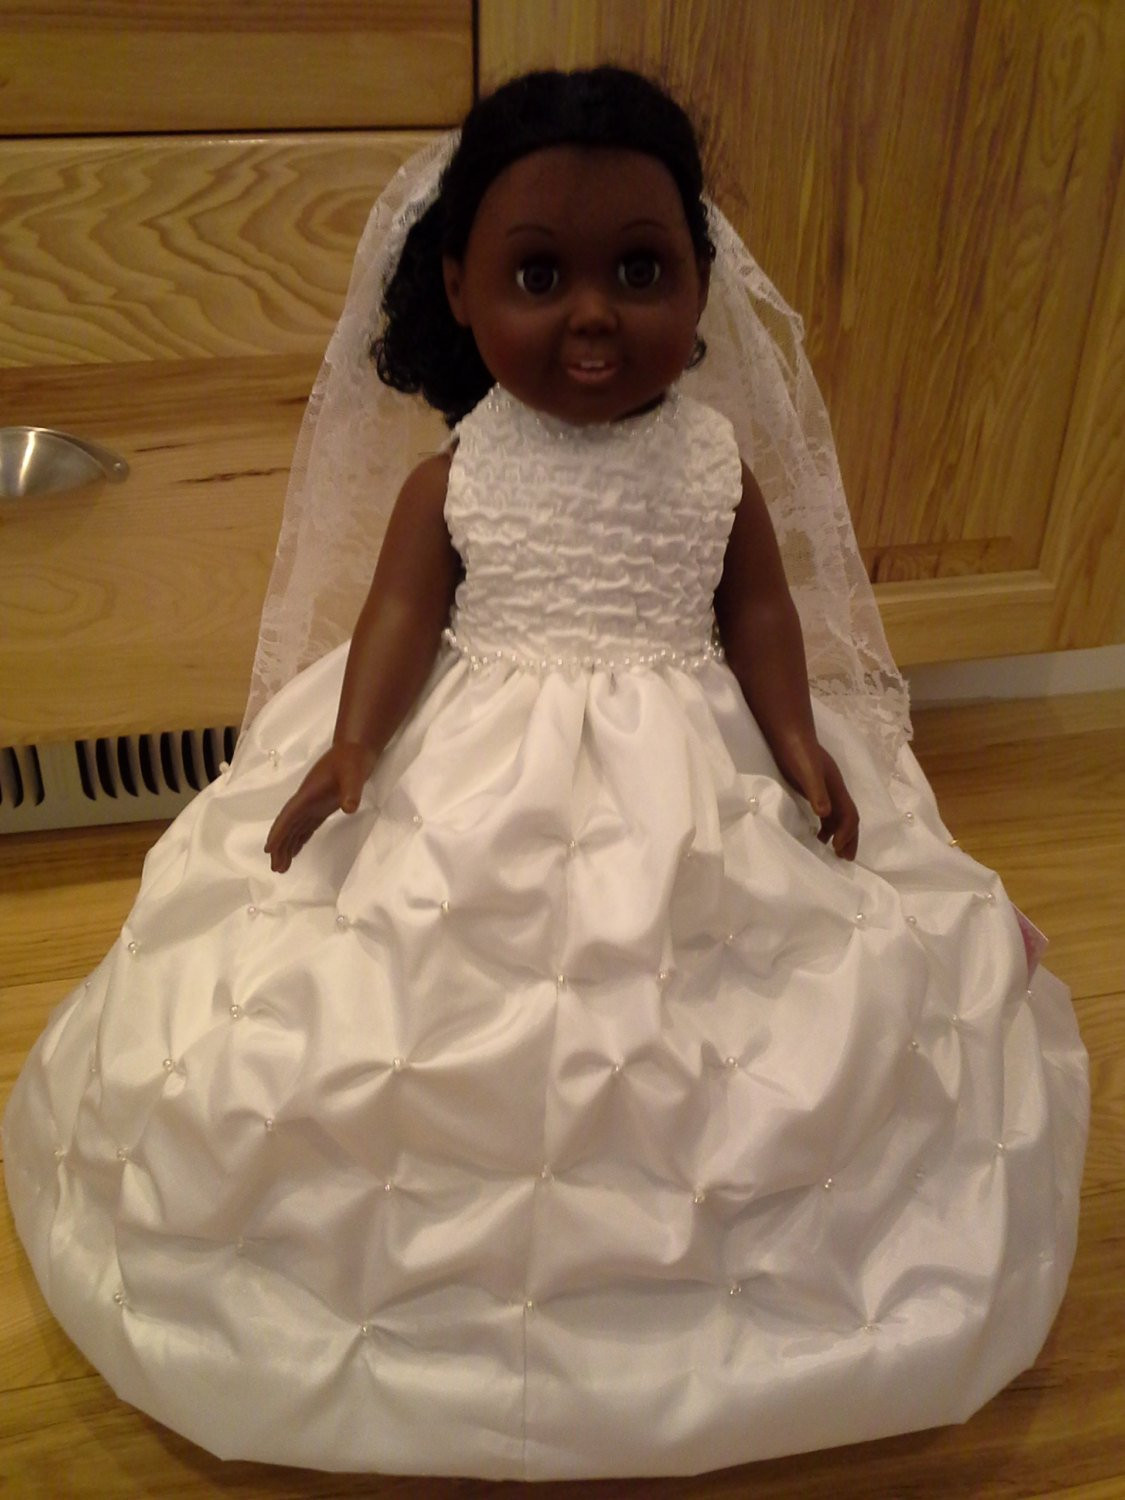 Elegant Doll Wedding Gown and Veil American Girl Doll American Girl Doll Wedding Dress Of New American Girl Doll Clothes Traditional Wedding Gown Dress American Girl Doll Wedding Dress